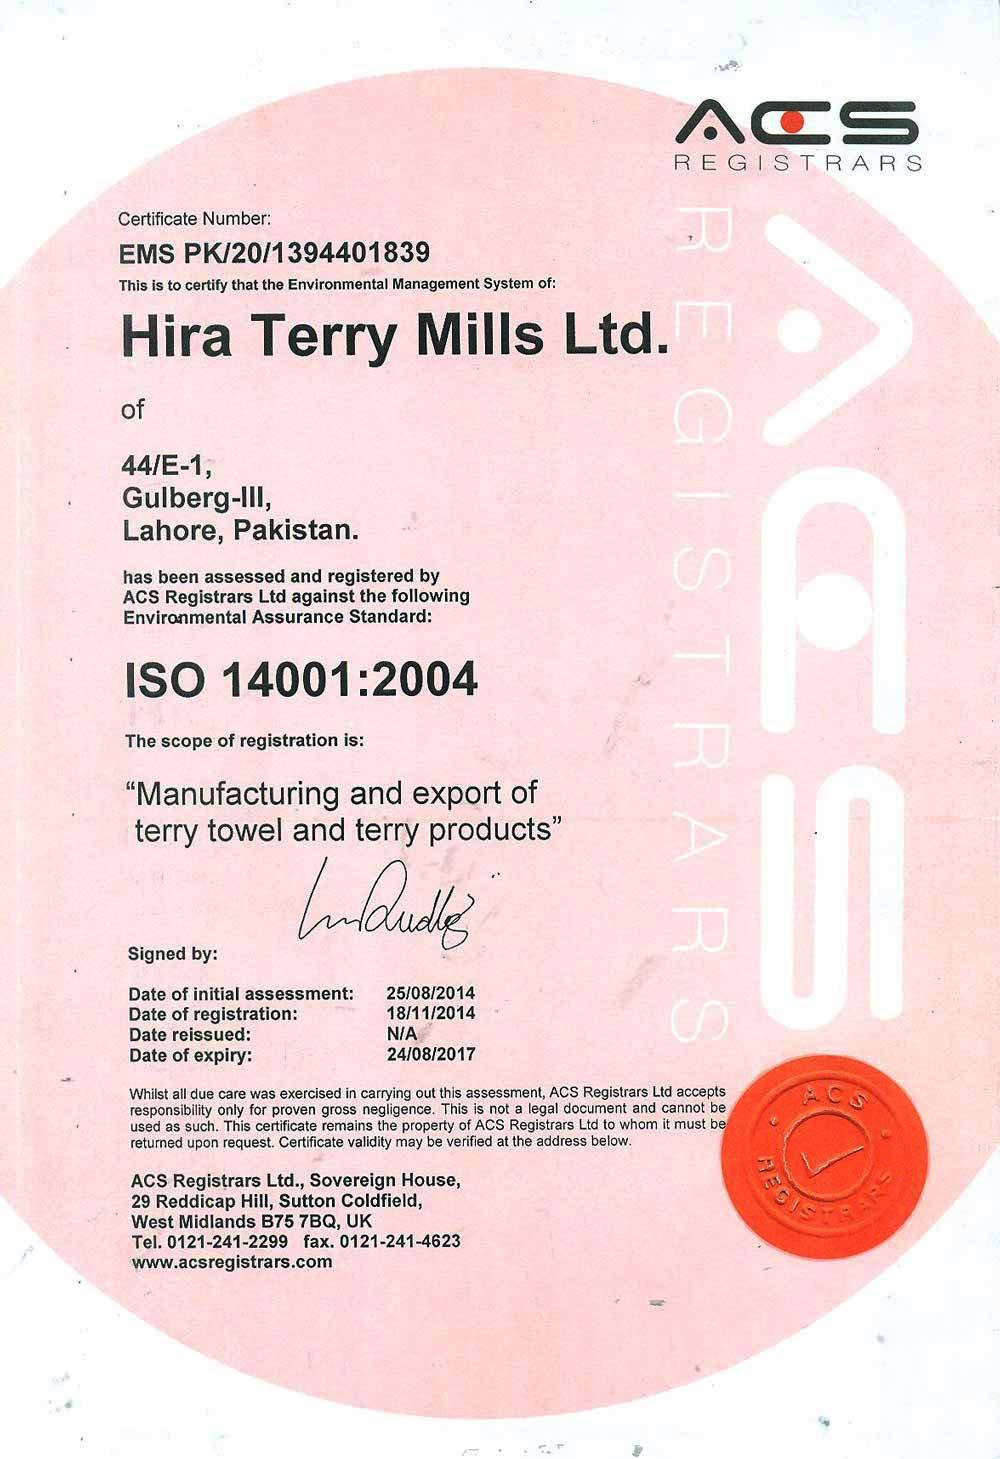 Hira Terry Mills Limited